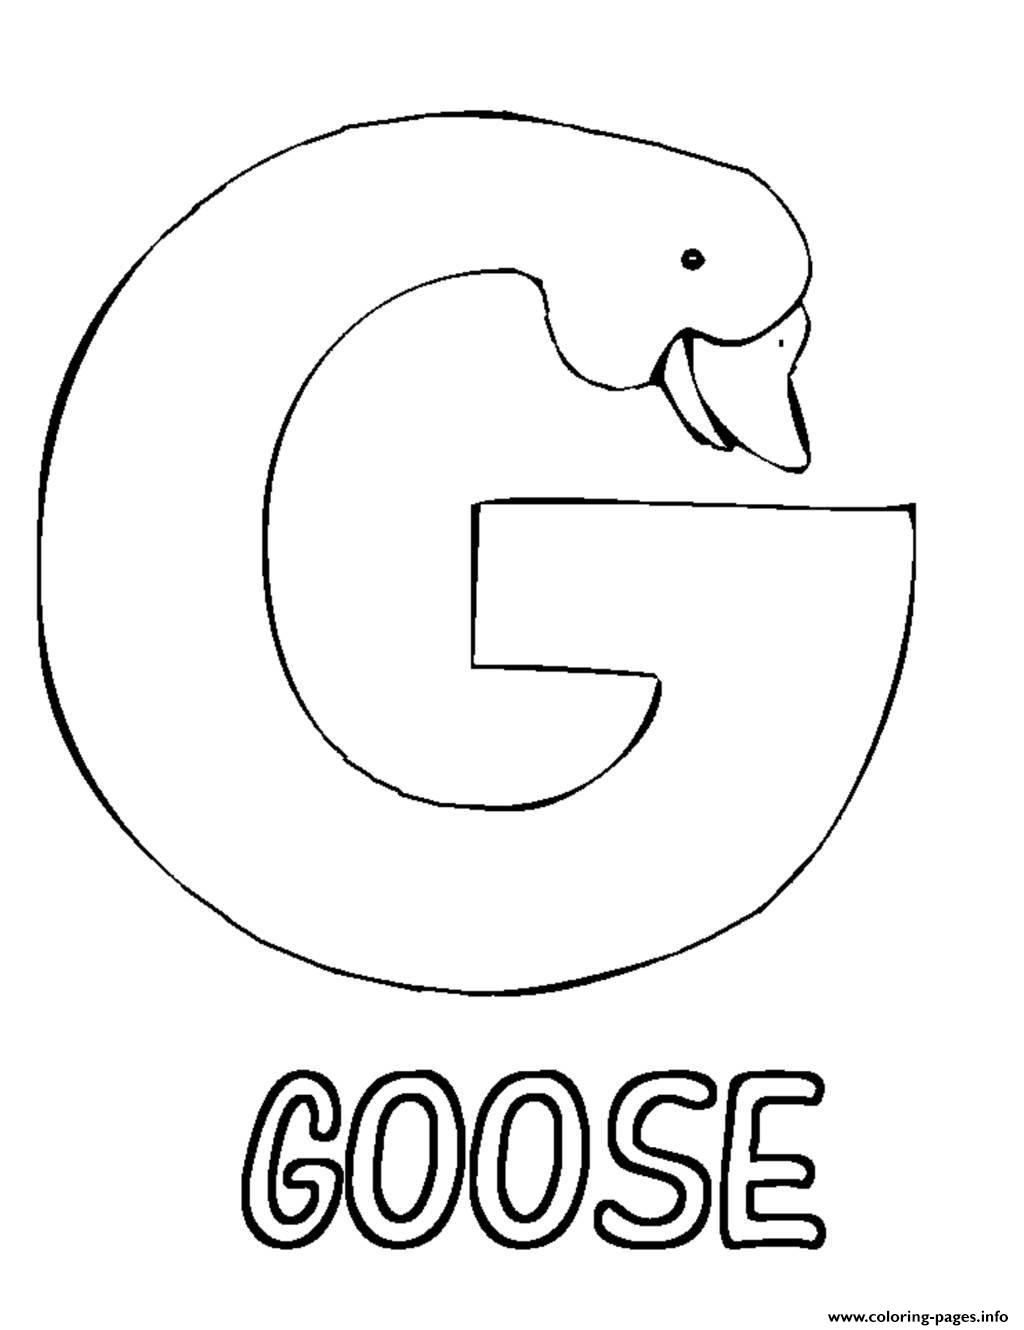 Preschool S Alphabet G For Goose Coloring Pages Printable